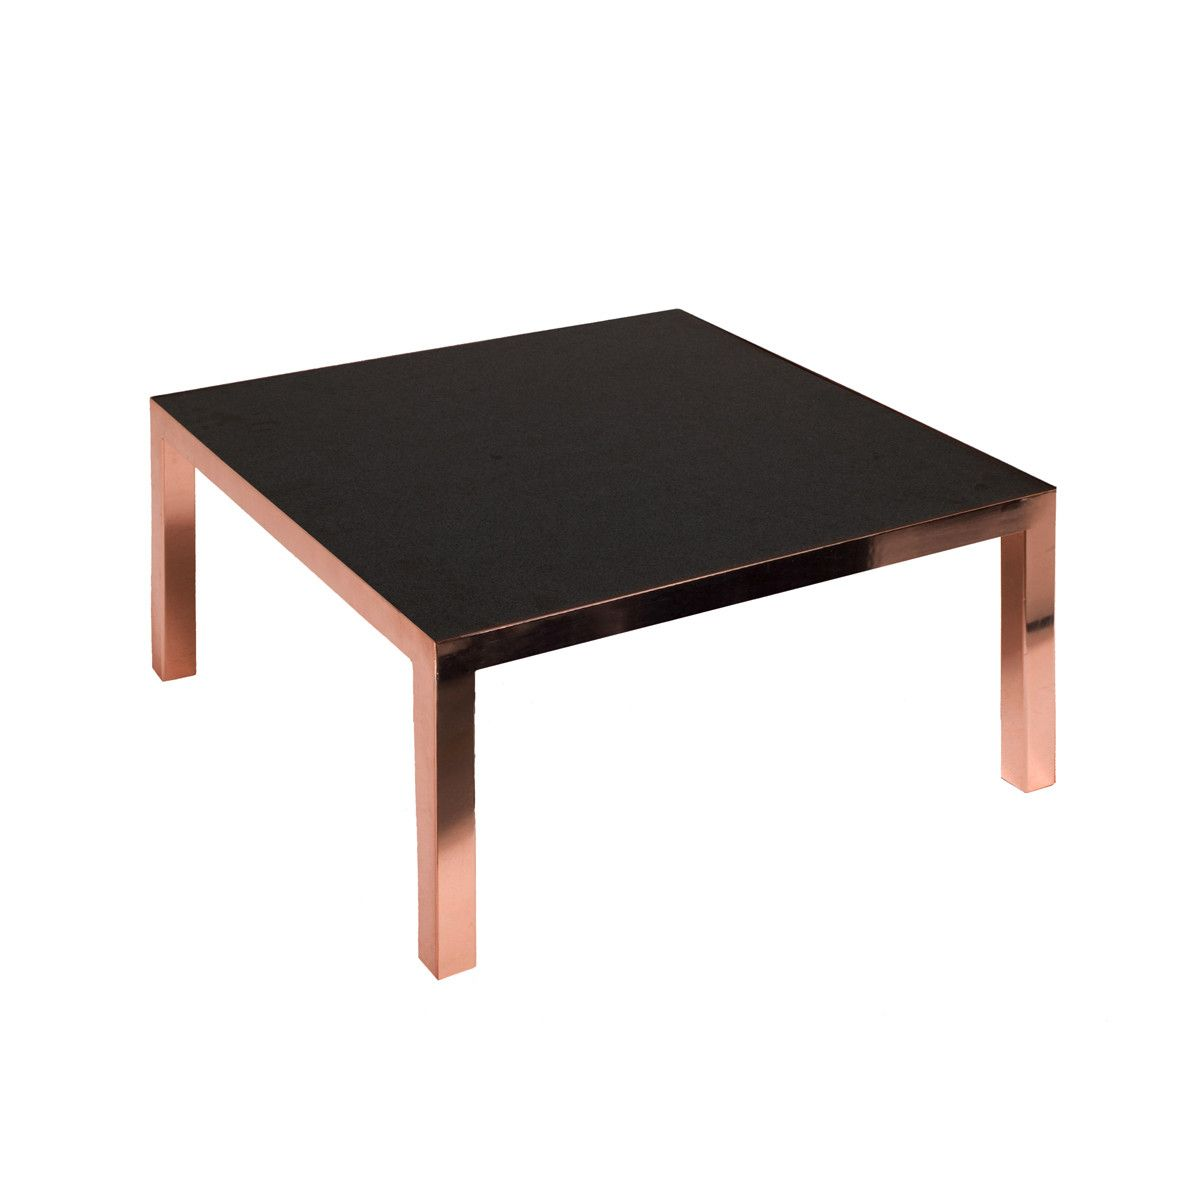 Tom Dixon Granite And Copper Coffee Table